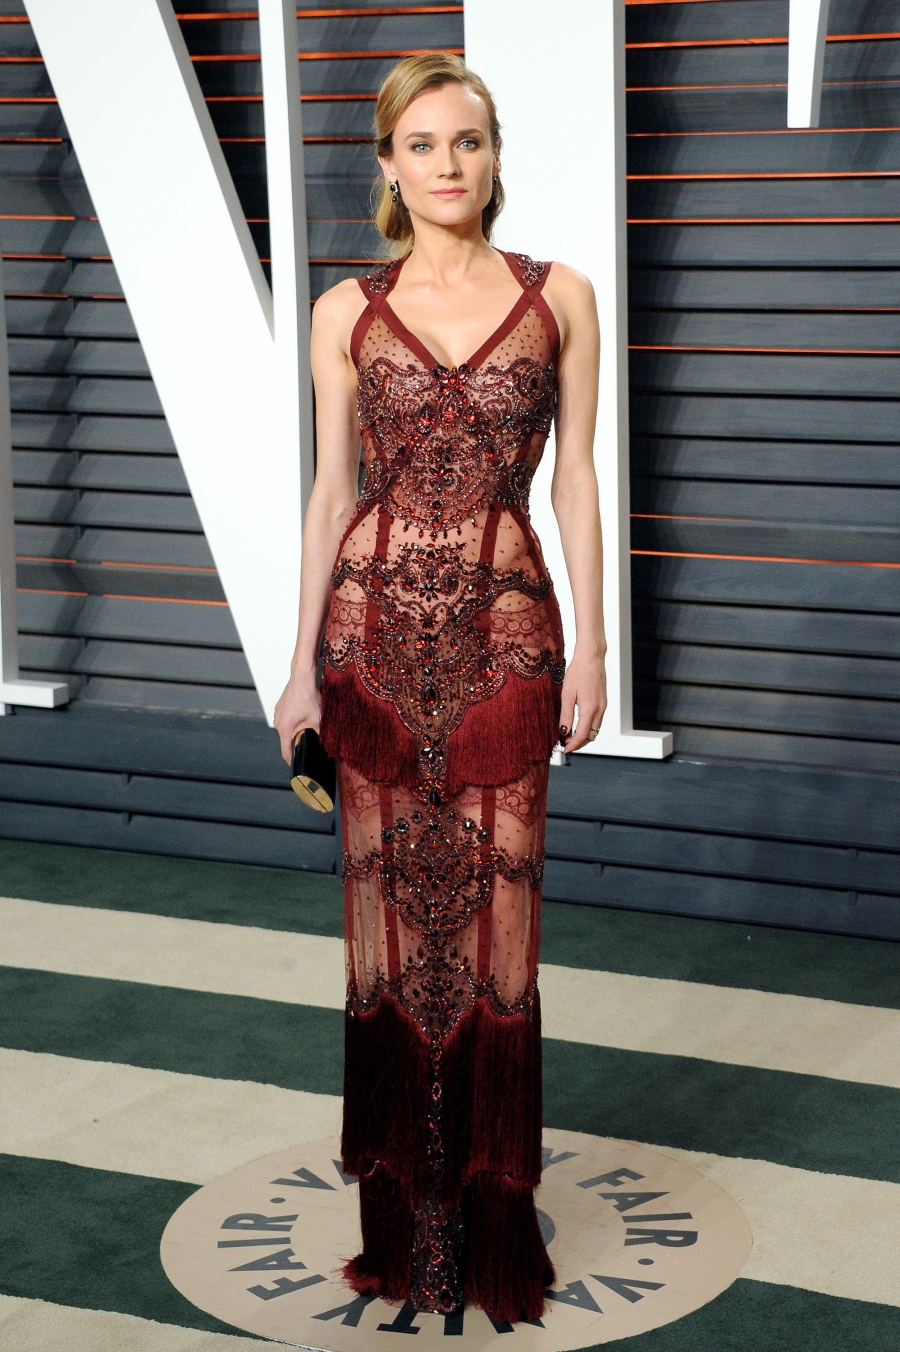 Erte Boudior at The Vanity Fair Oscar Party